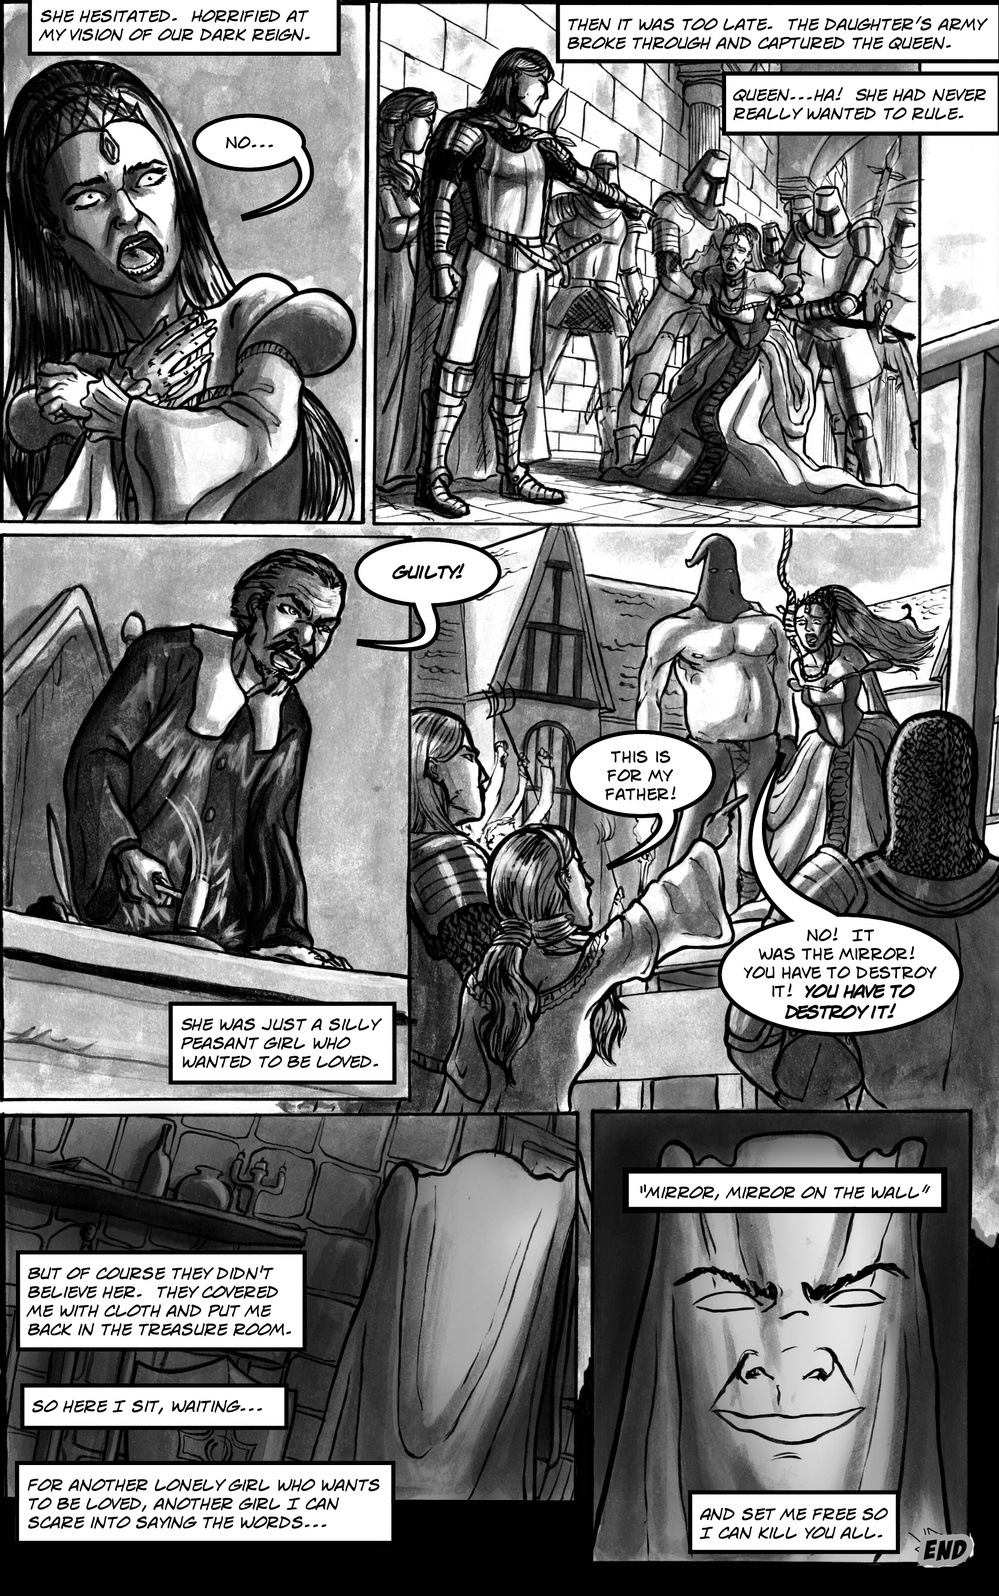 FAIREST page 6 - story 13 in The Book of Lies